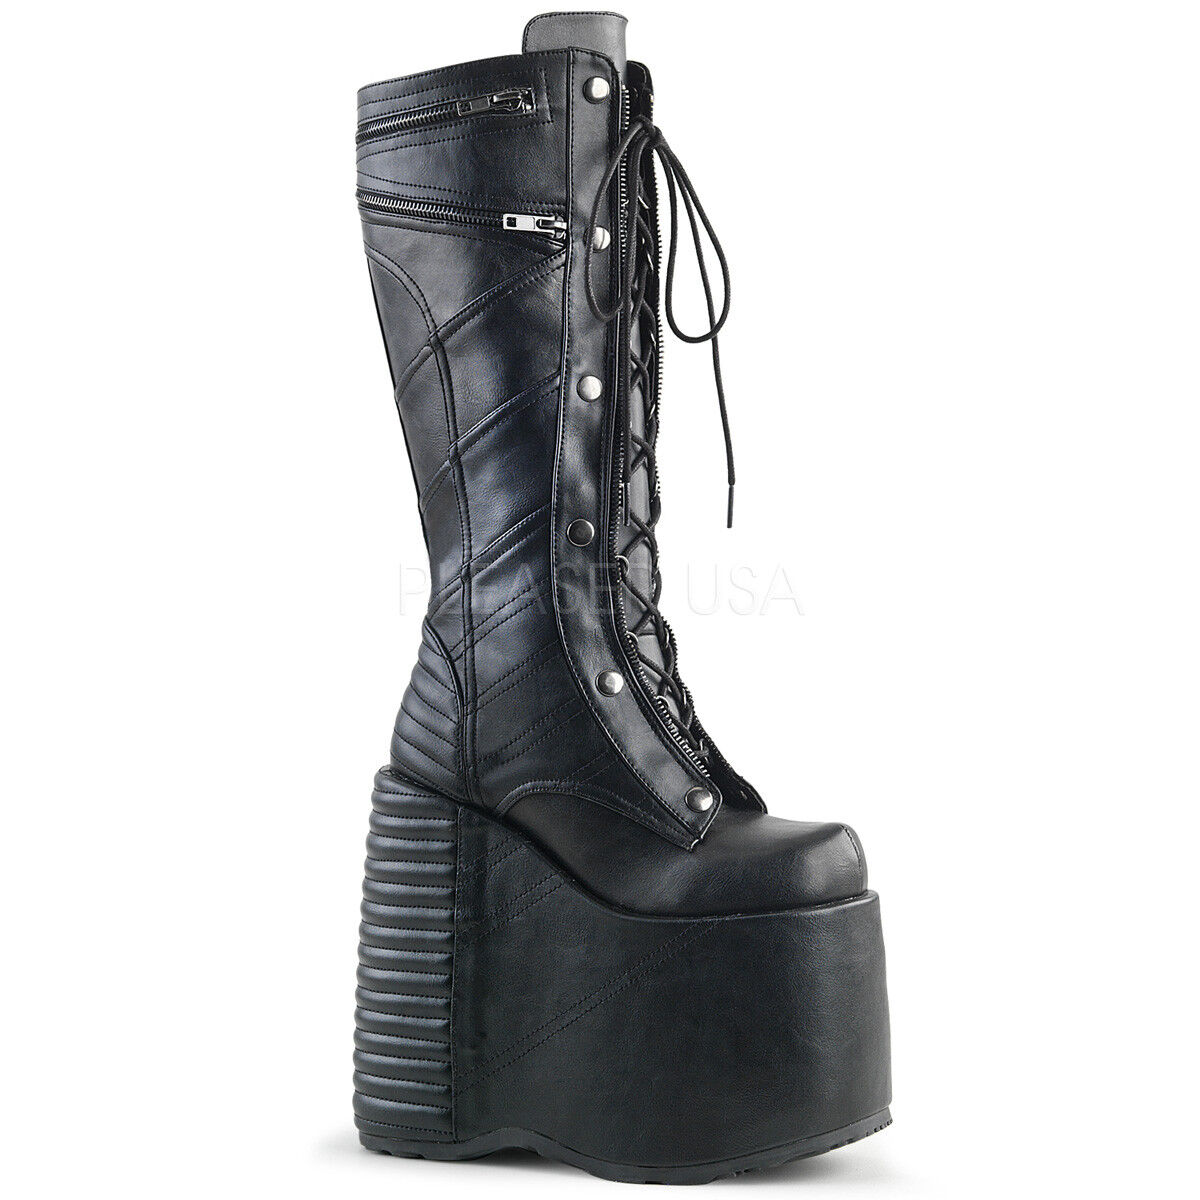 Demonia SLAY-320 Womens Sexy Black Vegan Leather Platform Lace-Up Knee High Boot